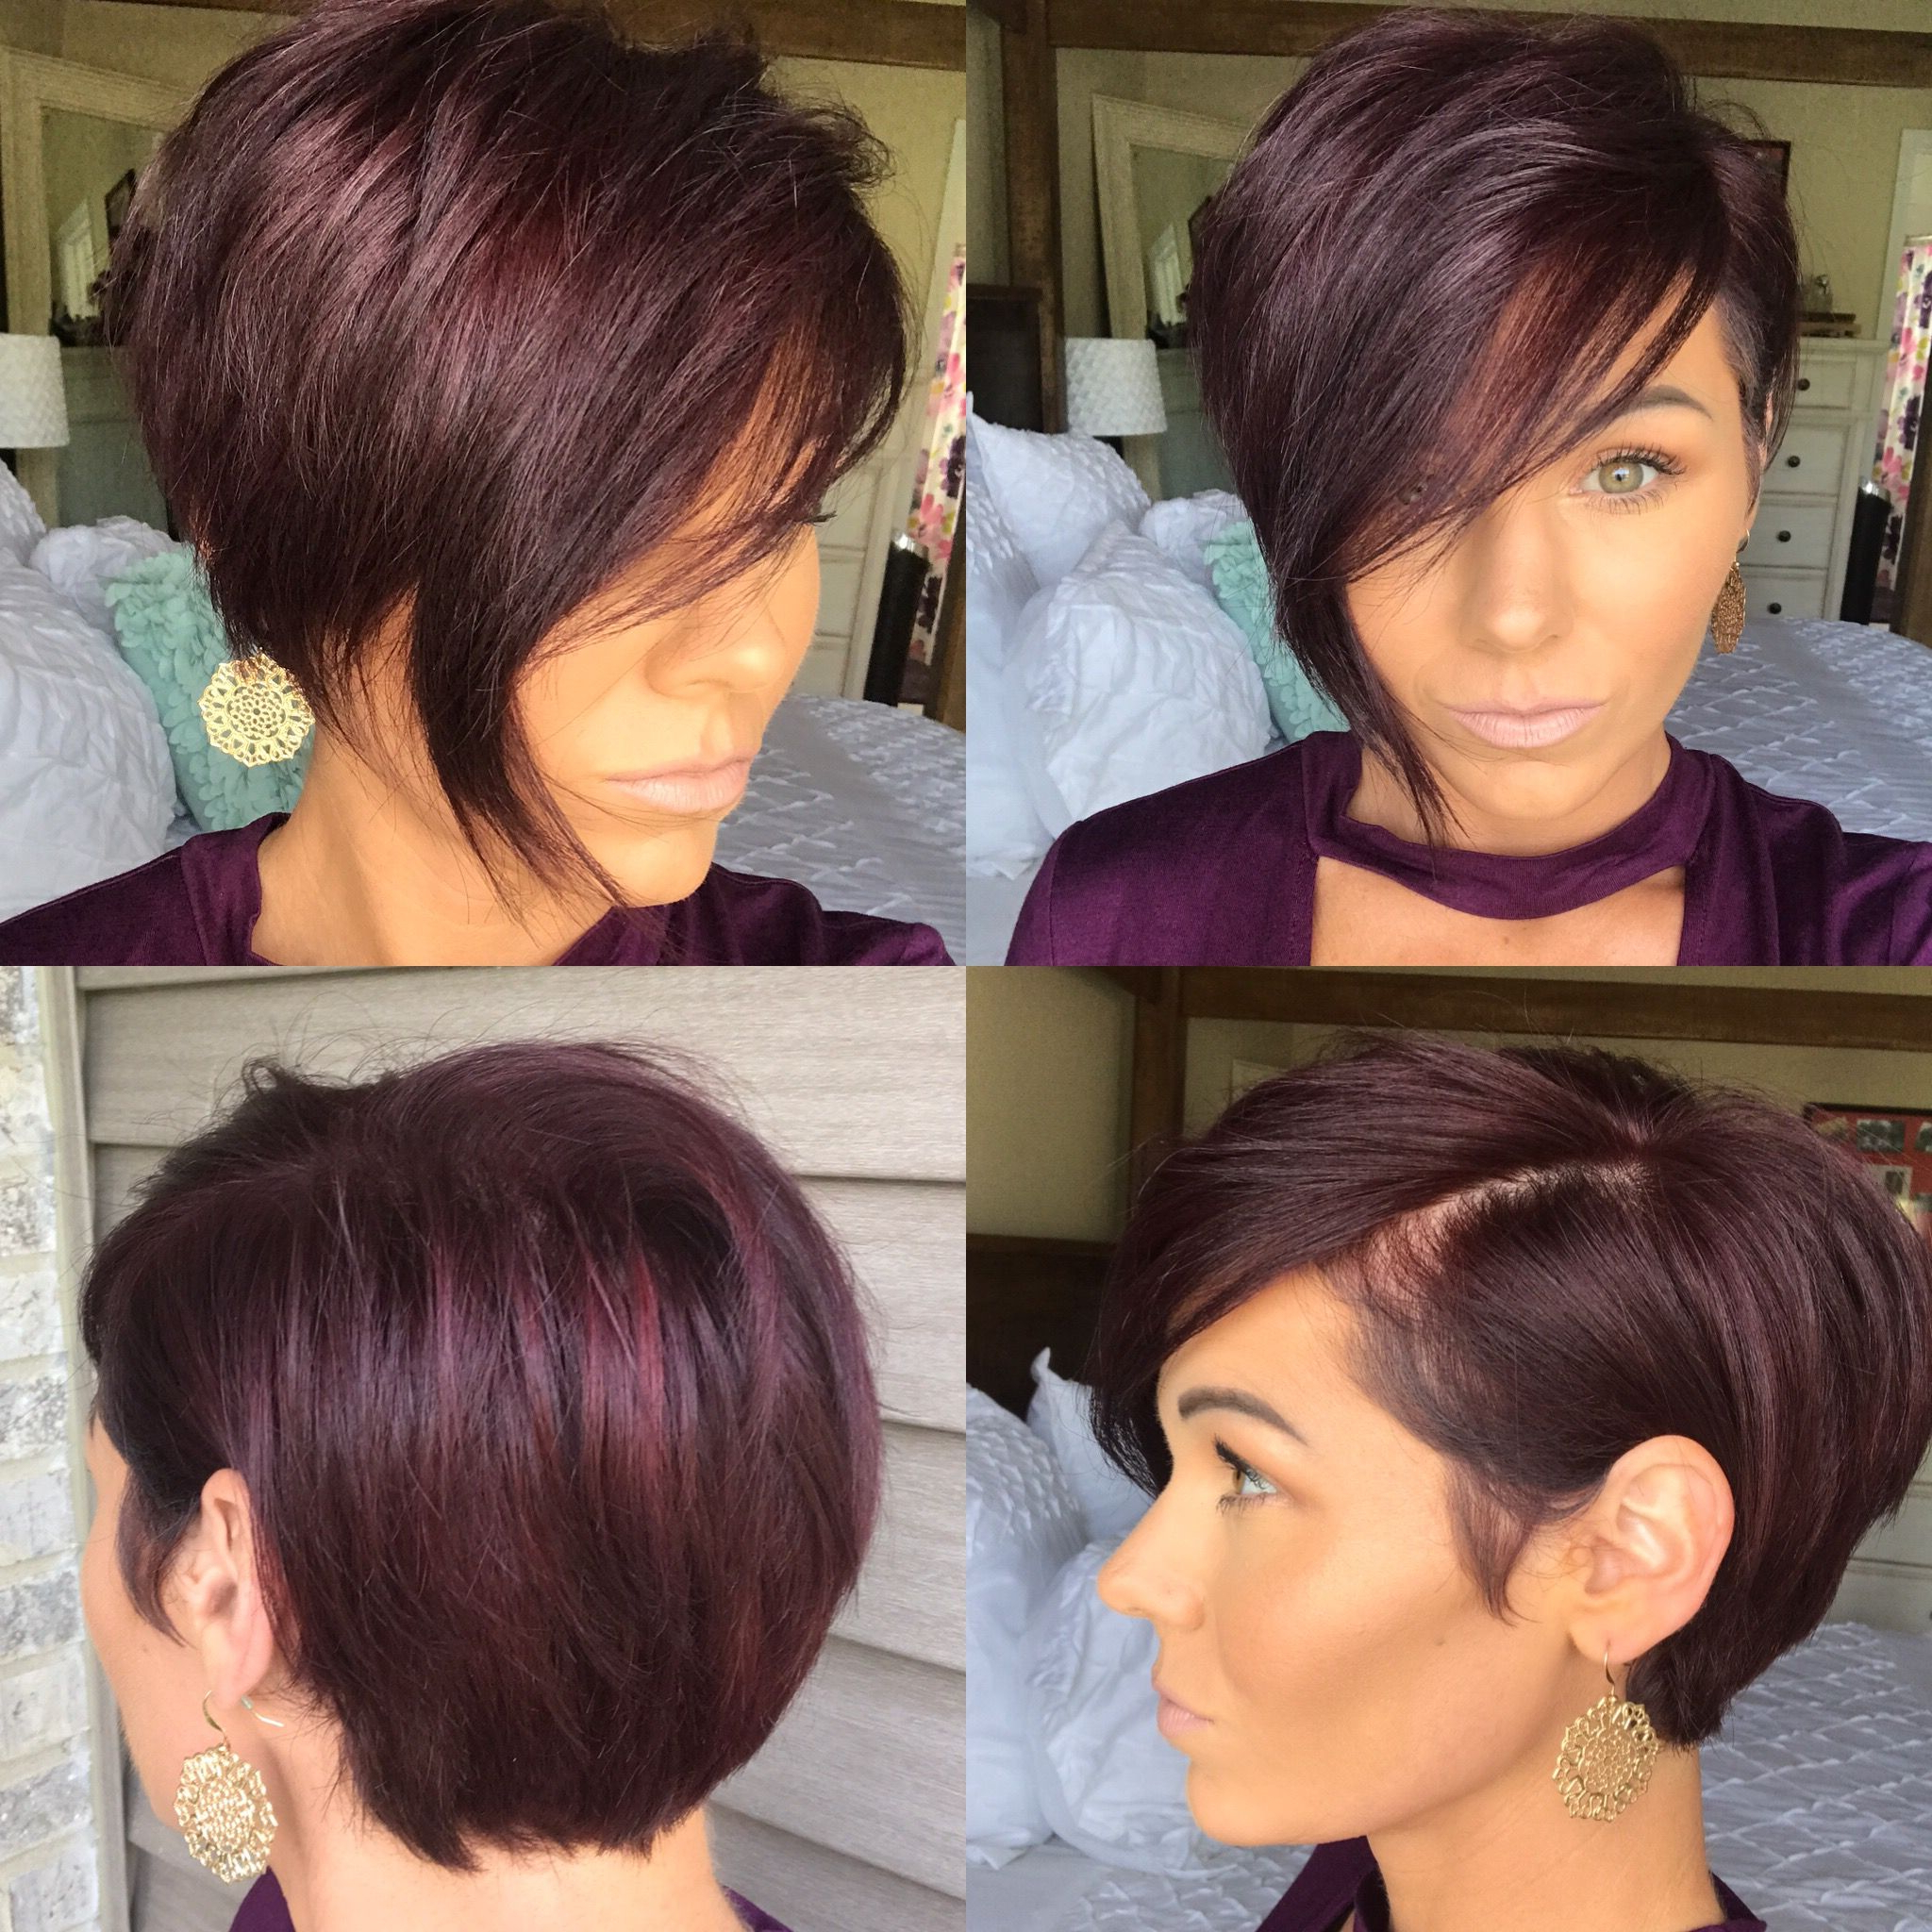 Adorable Asymmetrical Hairstyle | Hairdos | Pinterest | Asymmetrical Throughout Asymmetrical Pixie Bob Hairstyles (Gallery 2 of 20)